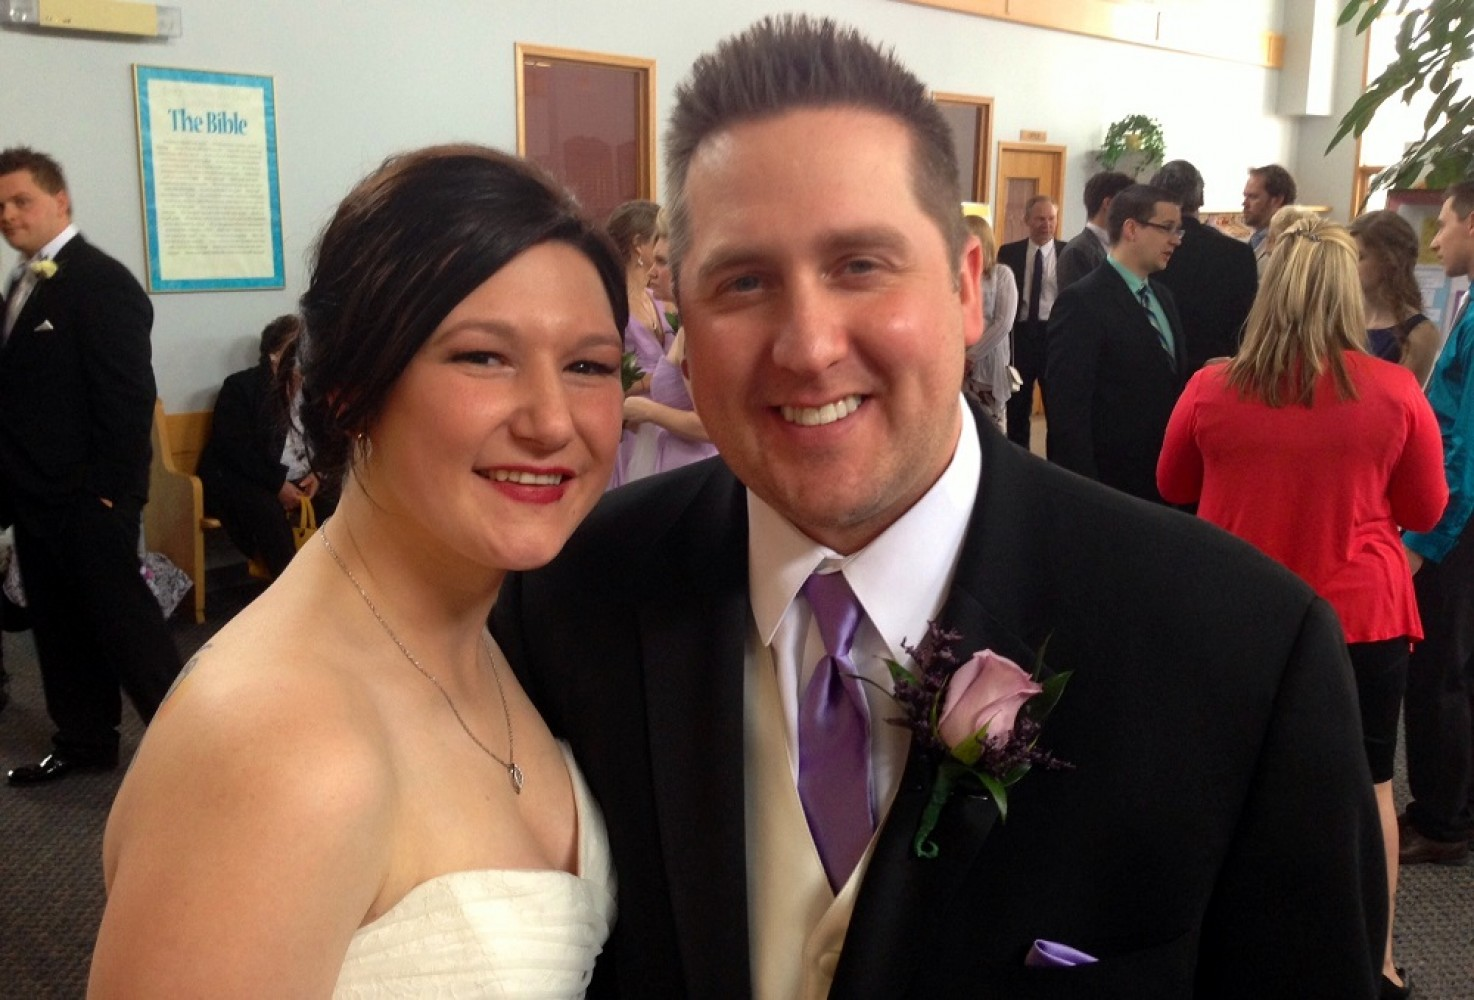 Wedding Sermon / Thayne & Maegan Giroux / Colossians 3:12-17 - Pastor Ted Giese / Mount Olive Lutheran Church - March 28th 2015